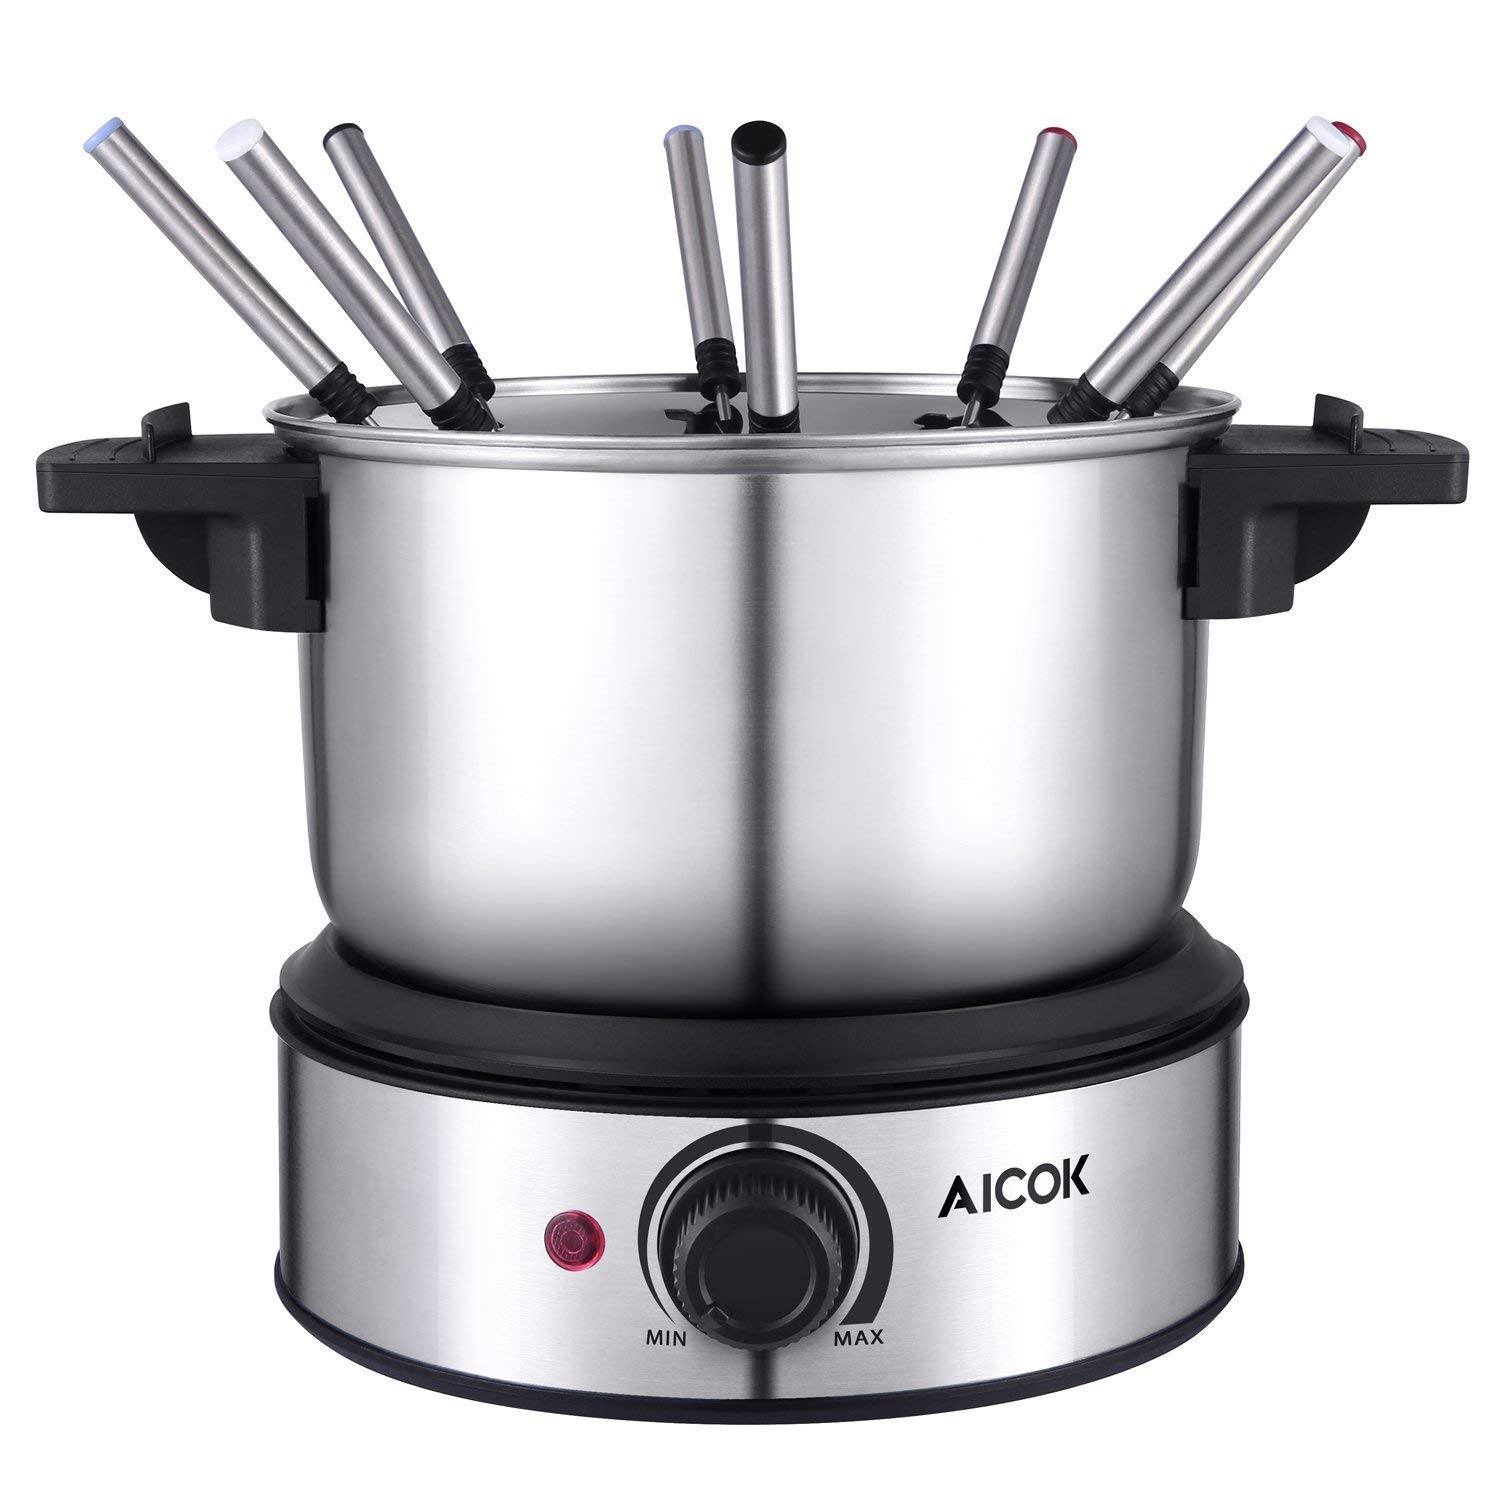 Electric Fondue Maker 6 Cup Stainless Steel Electric Fondue Pot with Temperature Control, 8 Color Fondue Forks and Removable Pot for Chocolate, Caramel, Cheese and Sauces, Aicok by AICOK